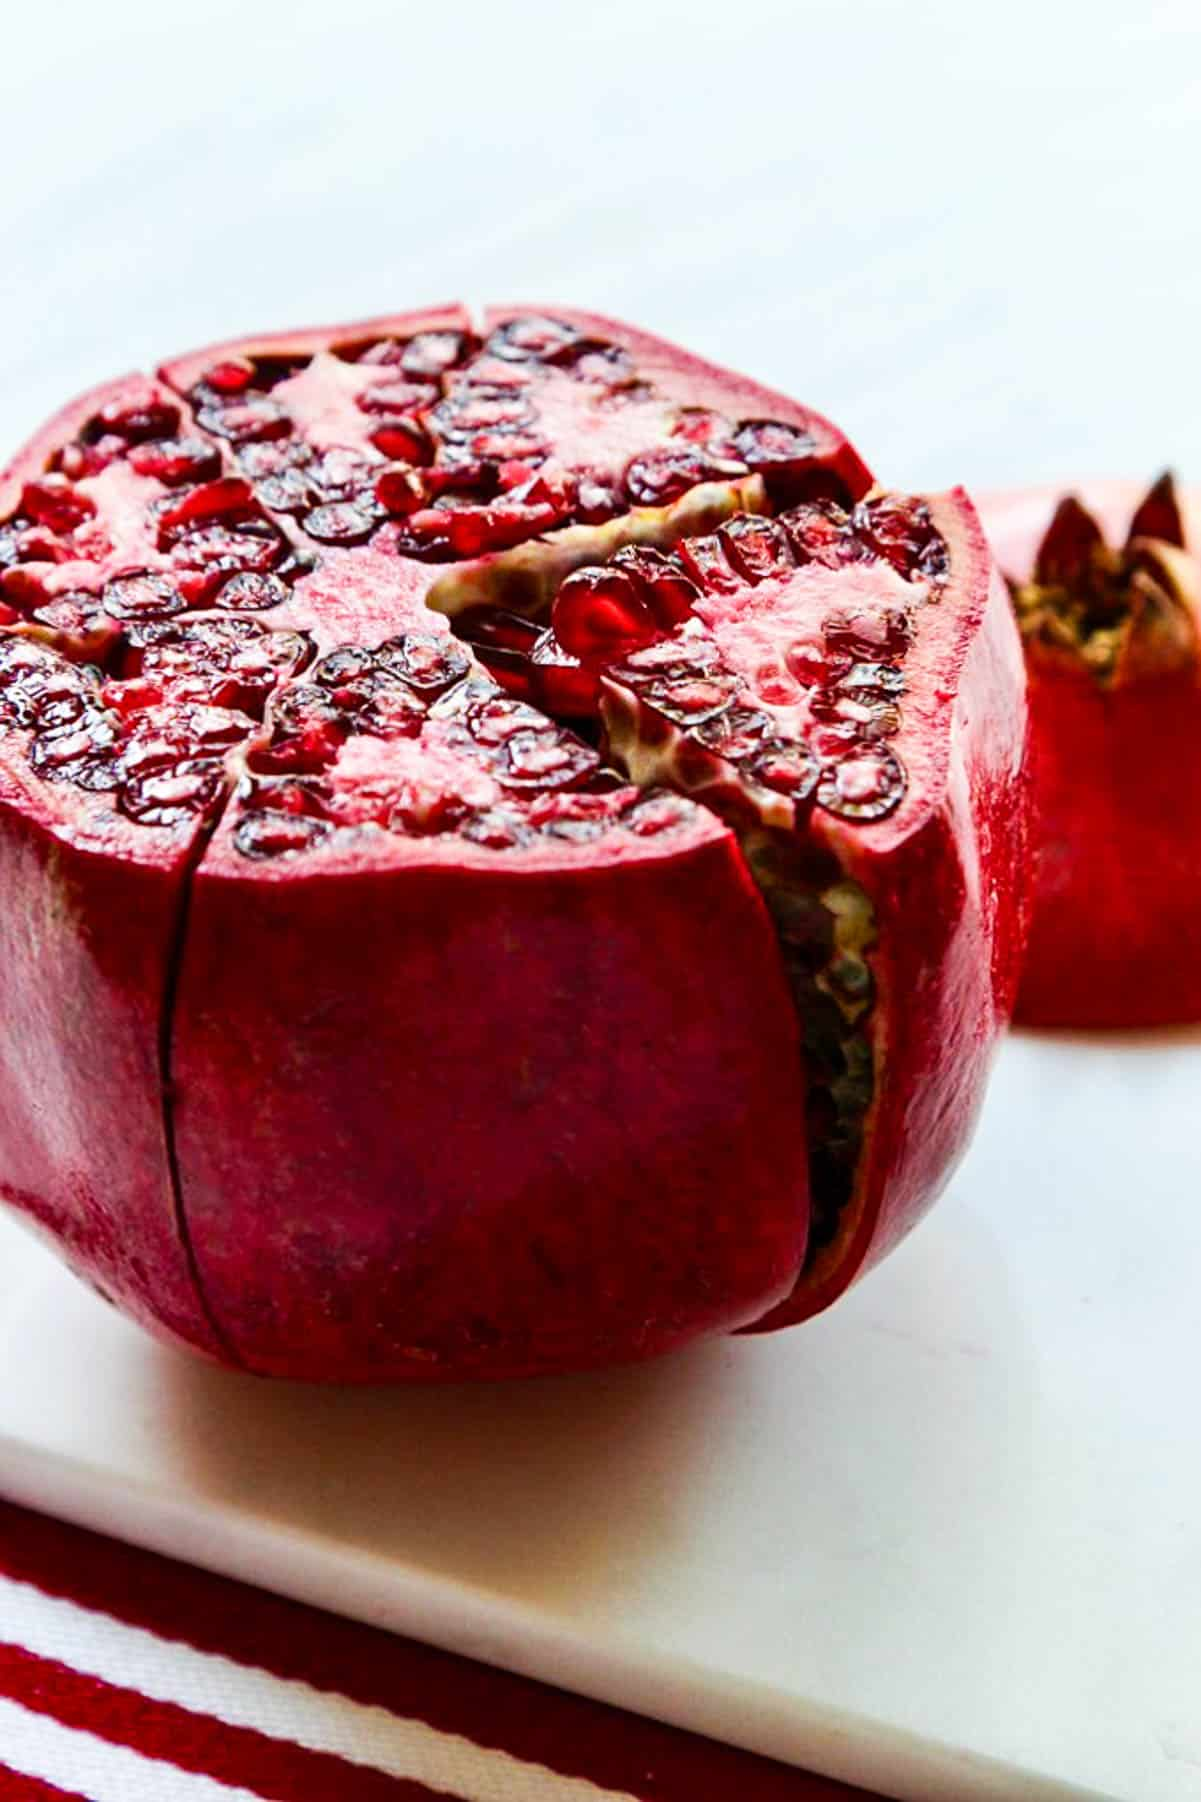 A large red pomegranate with the top cut off and cut down the side.